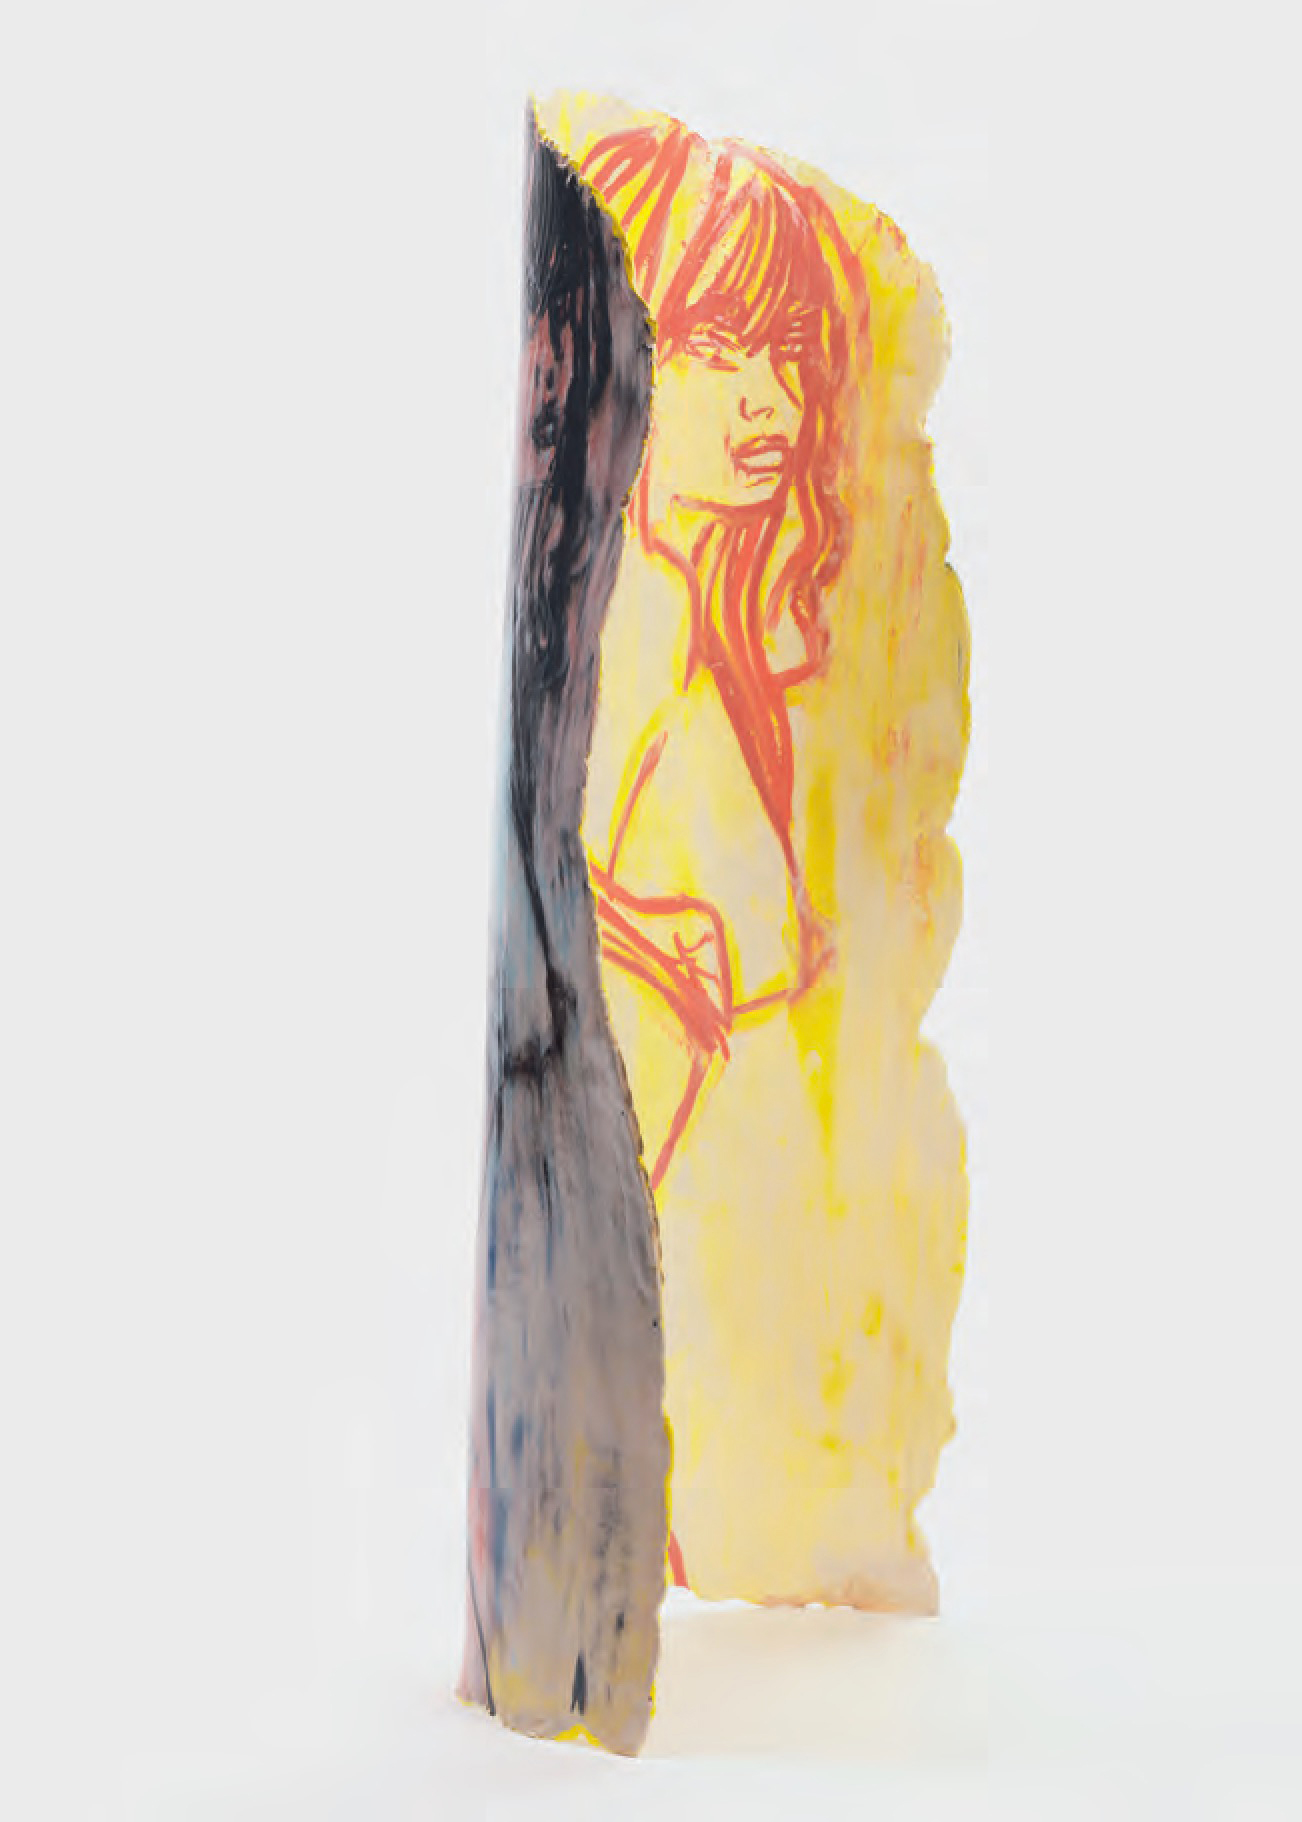 Standing Girl in Yellow, 2015 Ceramic - Ghada Amer - courtesy the artist and Cheim & Read